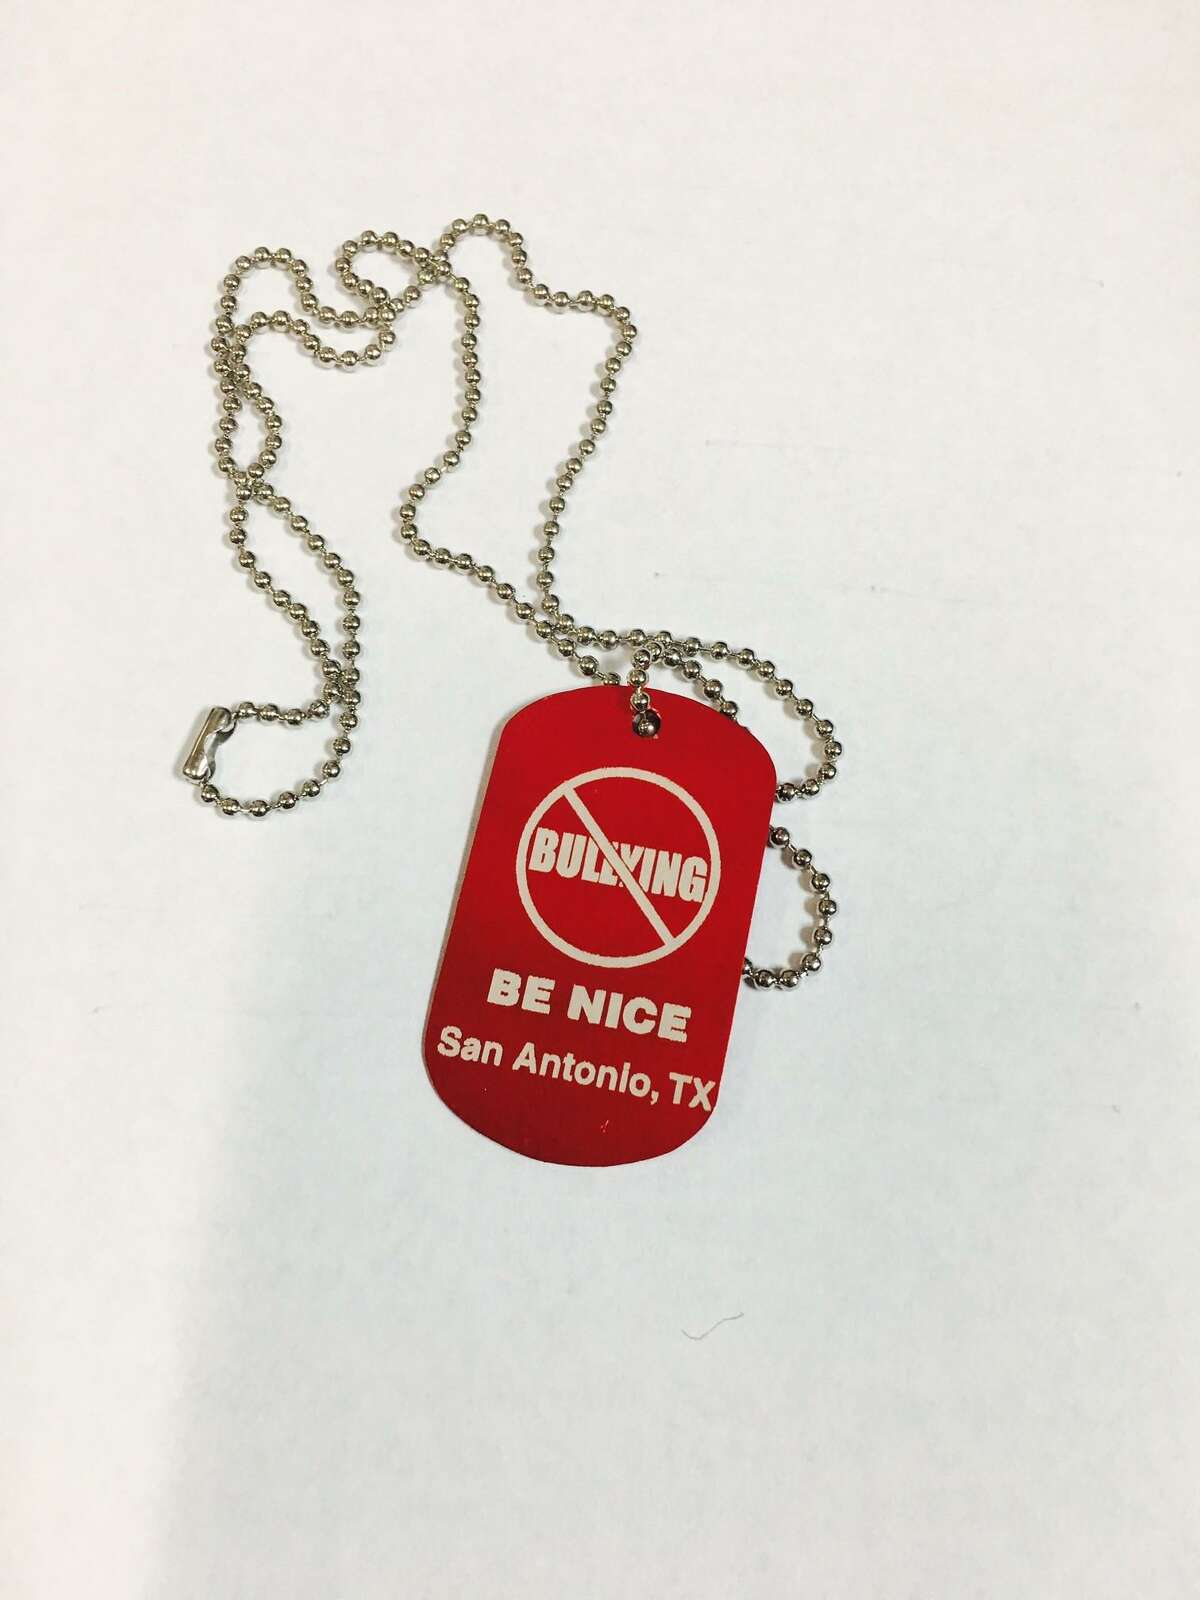 Epi Quiroga's SABullyFree Campaign dog tag. He says 10,000 children and adults in San Antonio have pledged to stop bullying as part of his pep rallies, events and speeches at schools and other events.